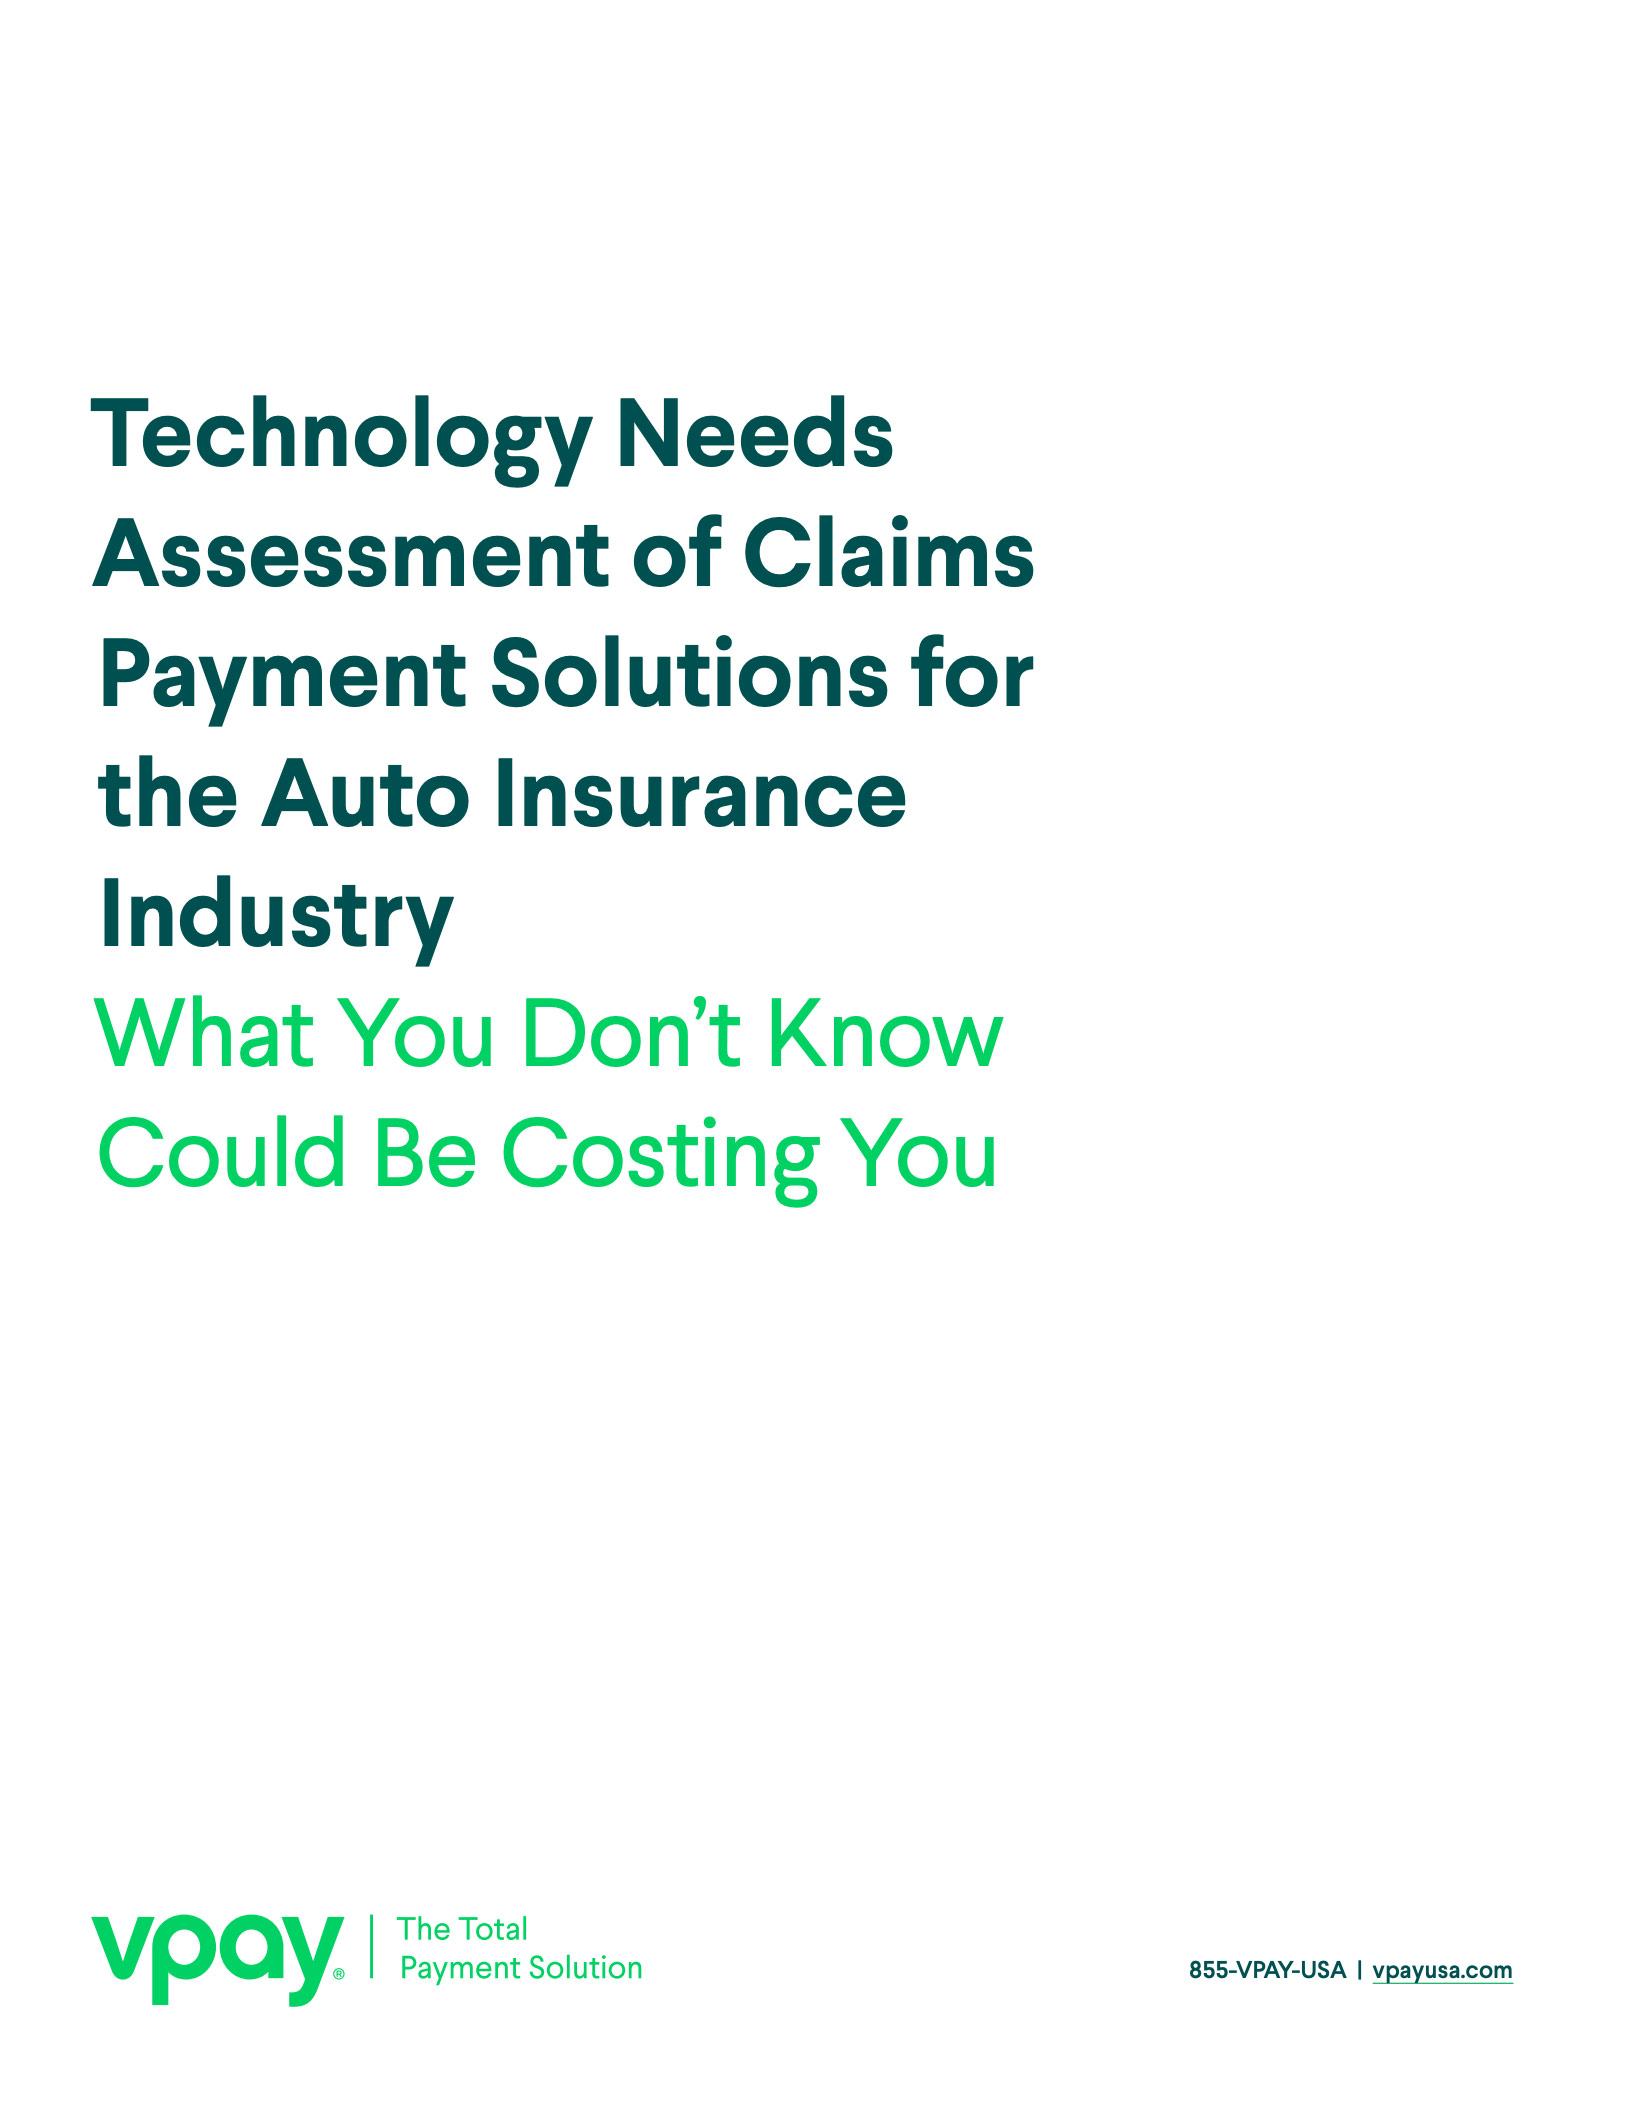 How Claims Are Processed Can Cost Auto Insurers More than Realized